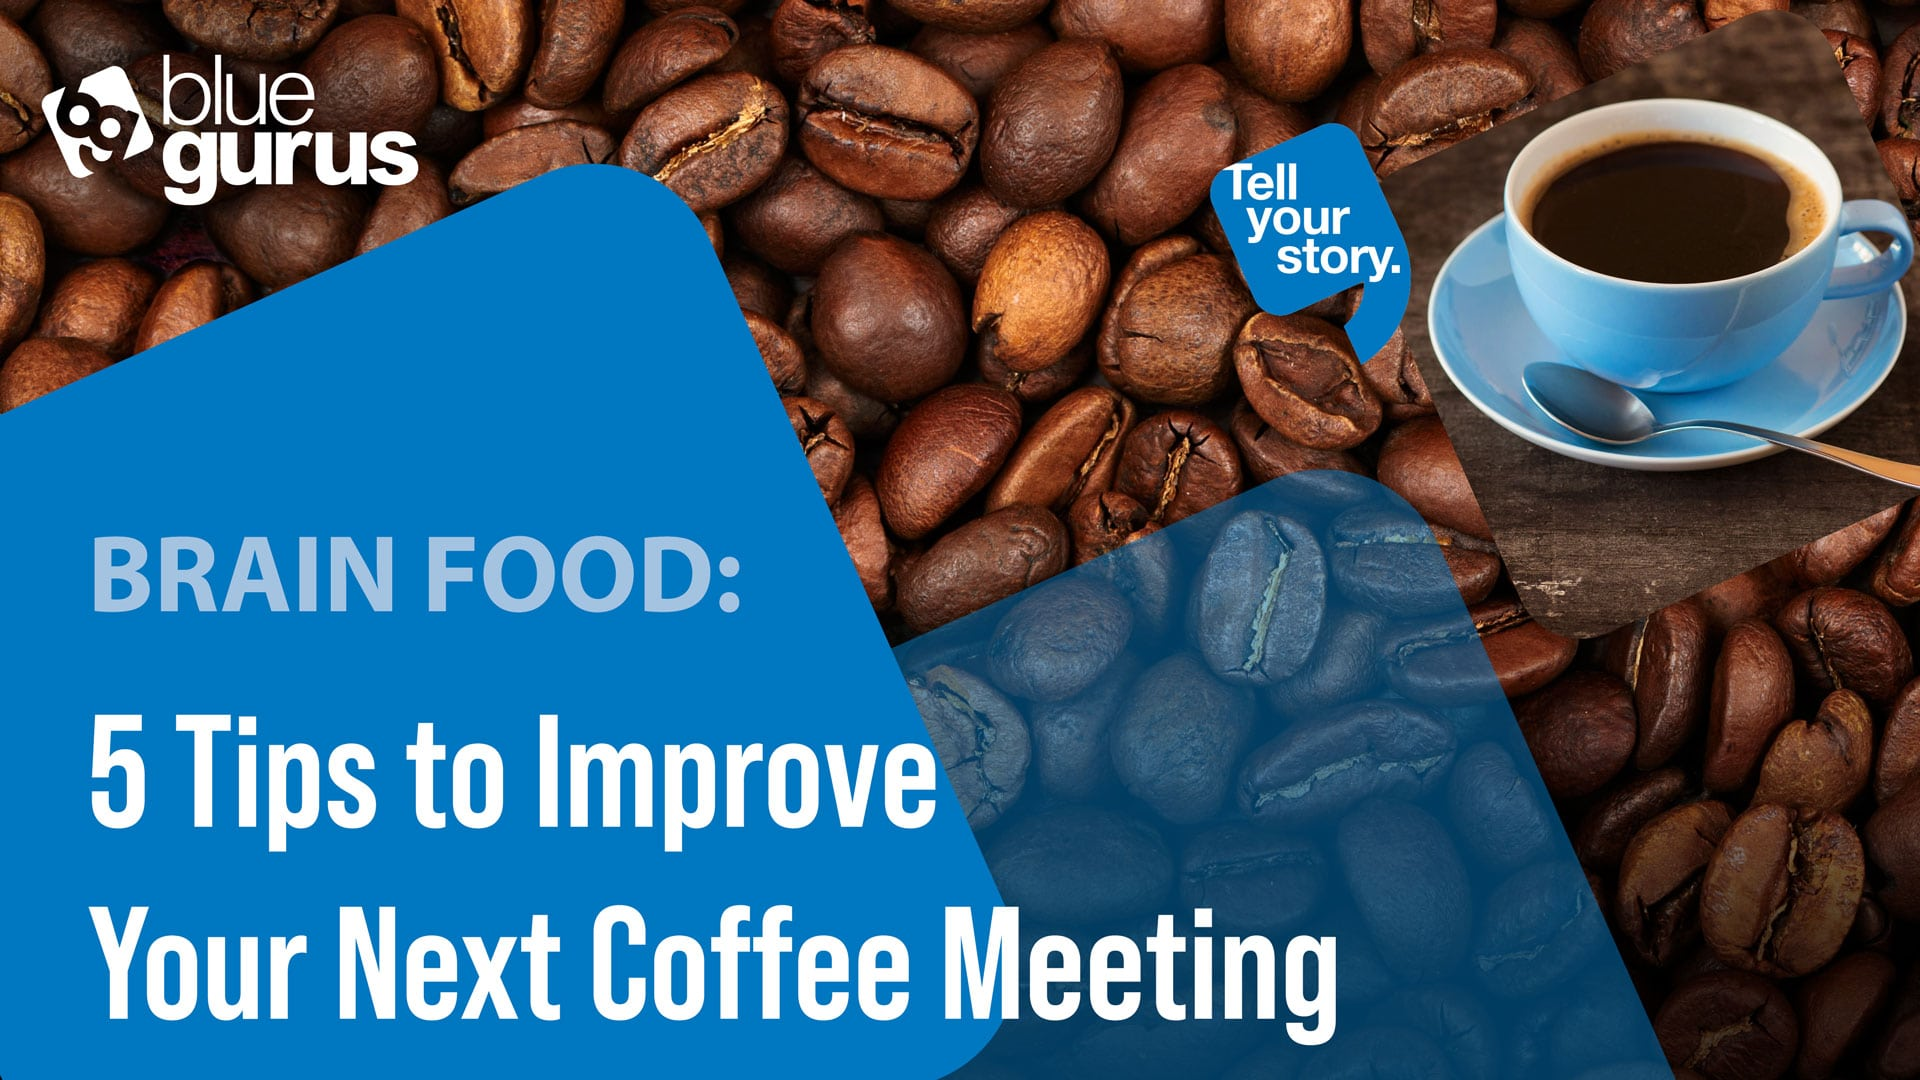 5 Tips to Improve Your Next Coffee Meeting